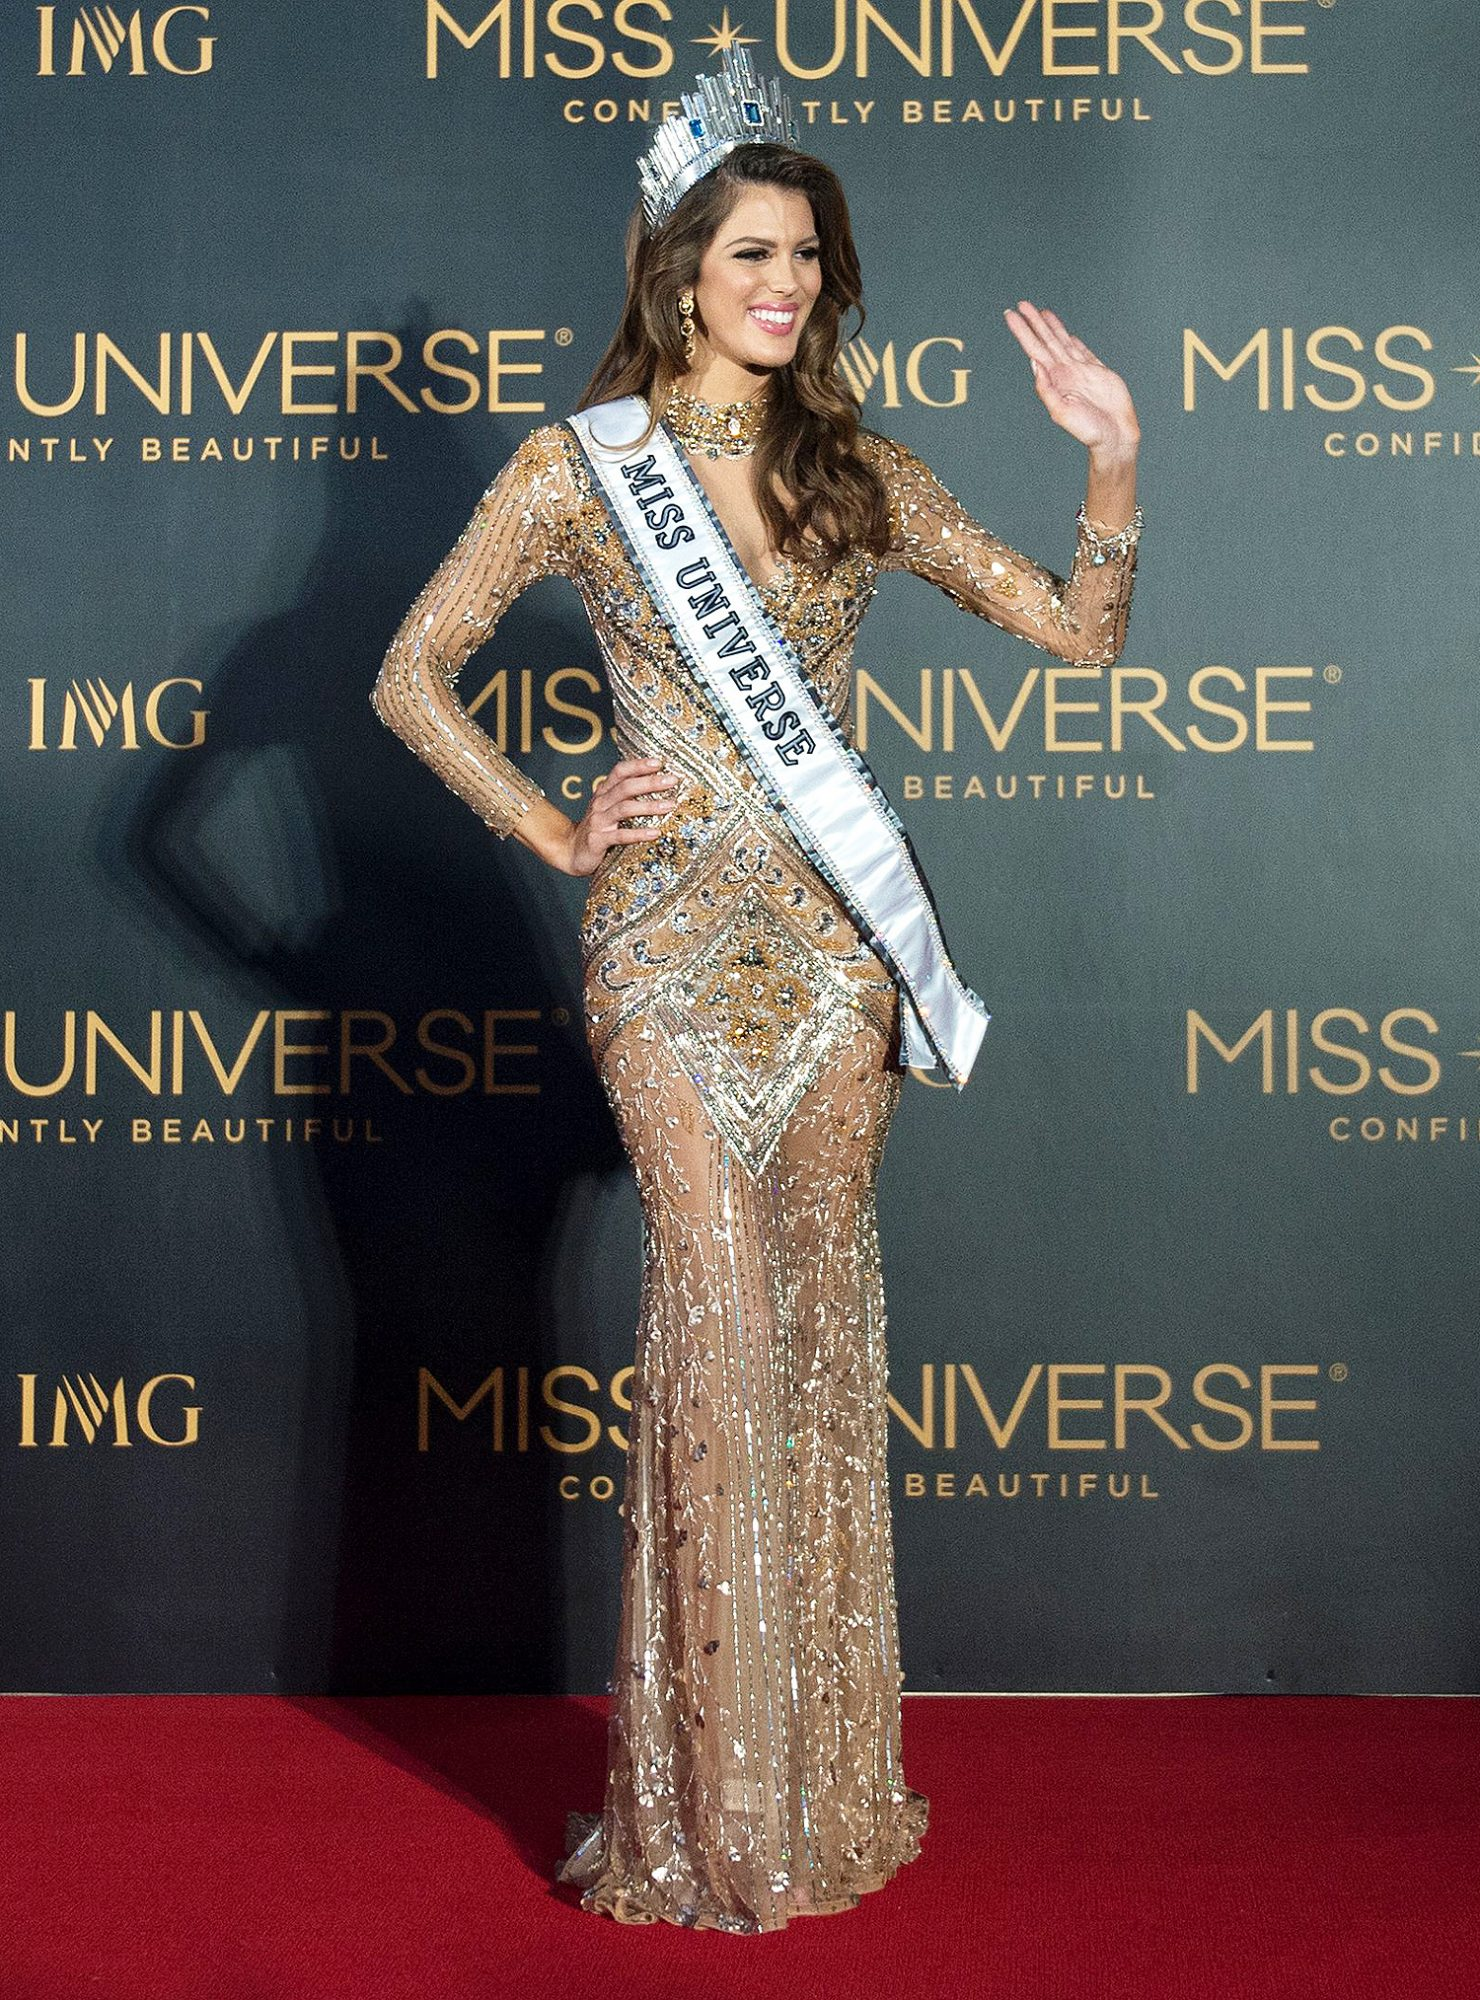 PHILIPPINES-ENTERTAINMENT-MISS UNIVERSE